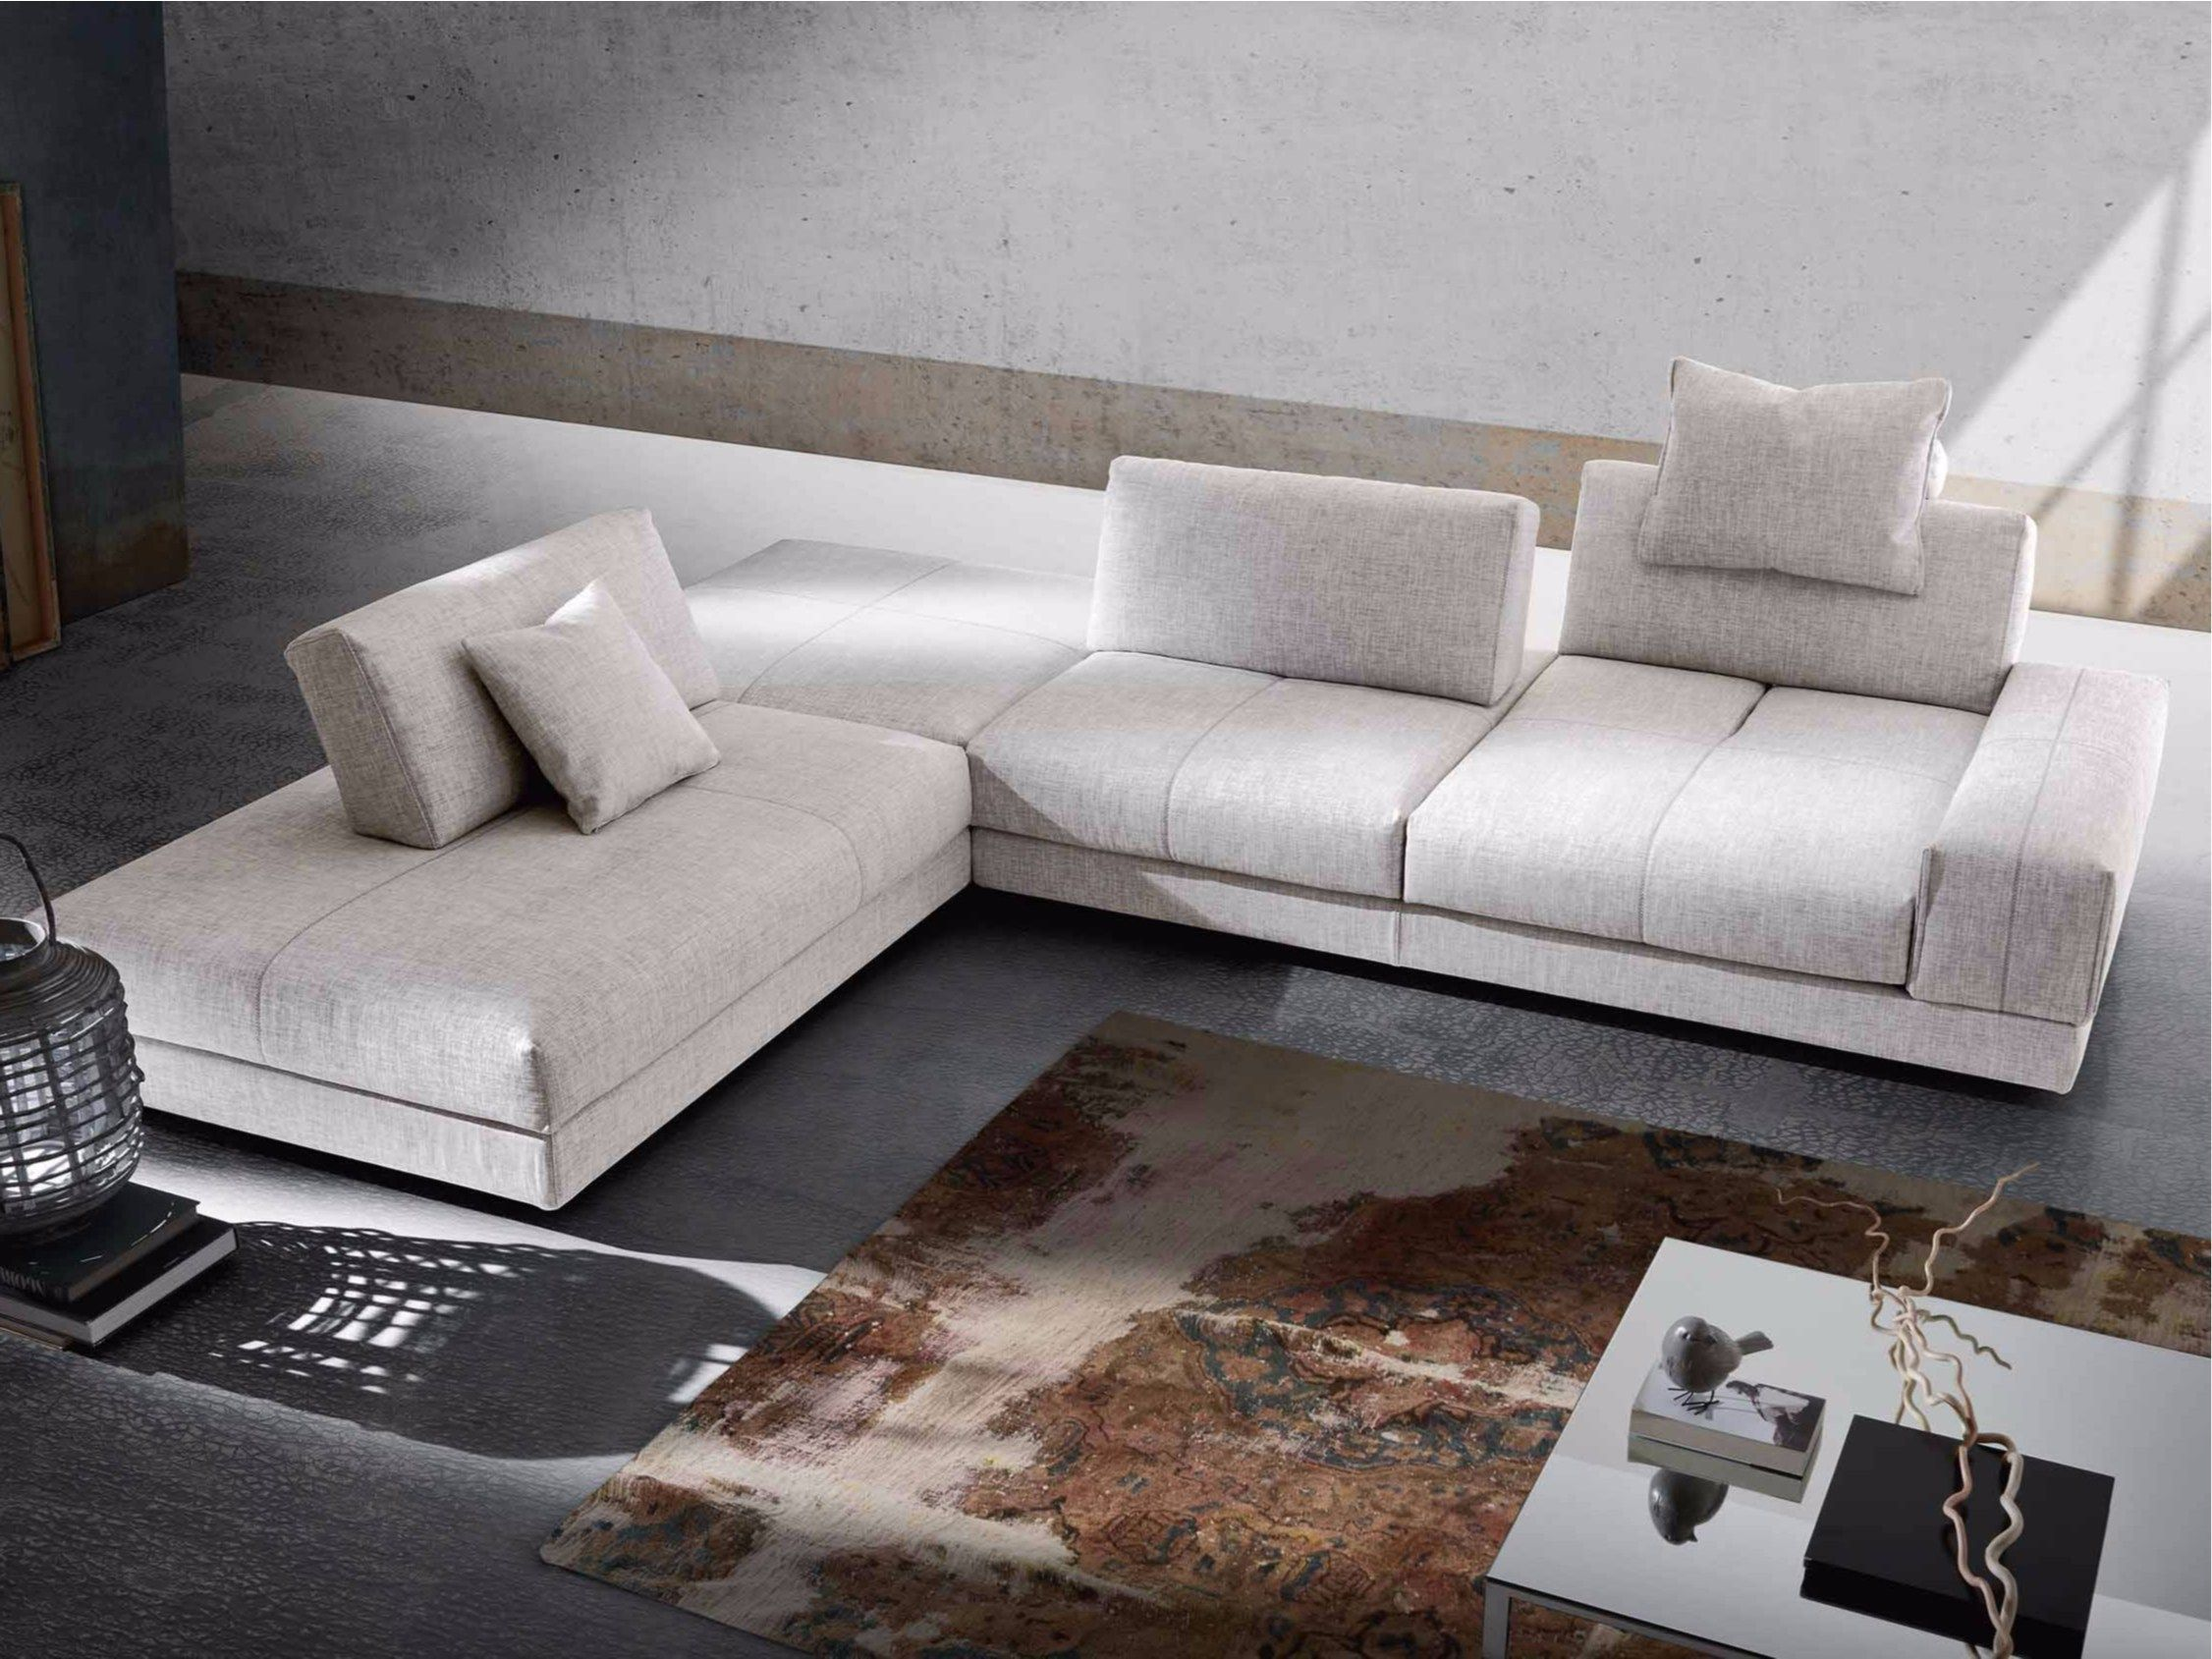 Corner convertible sofa OPEN SPACE by GURIAN design Zeno Nugari